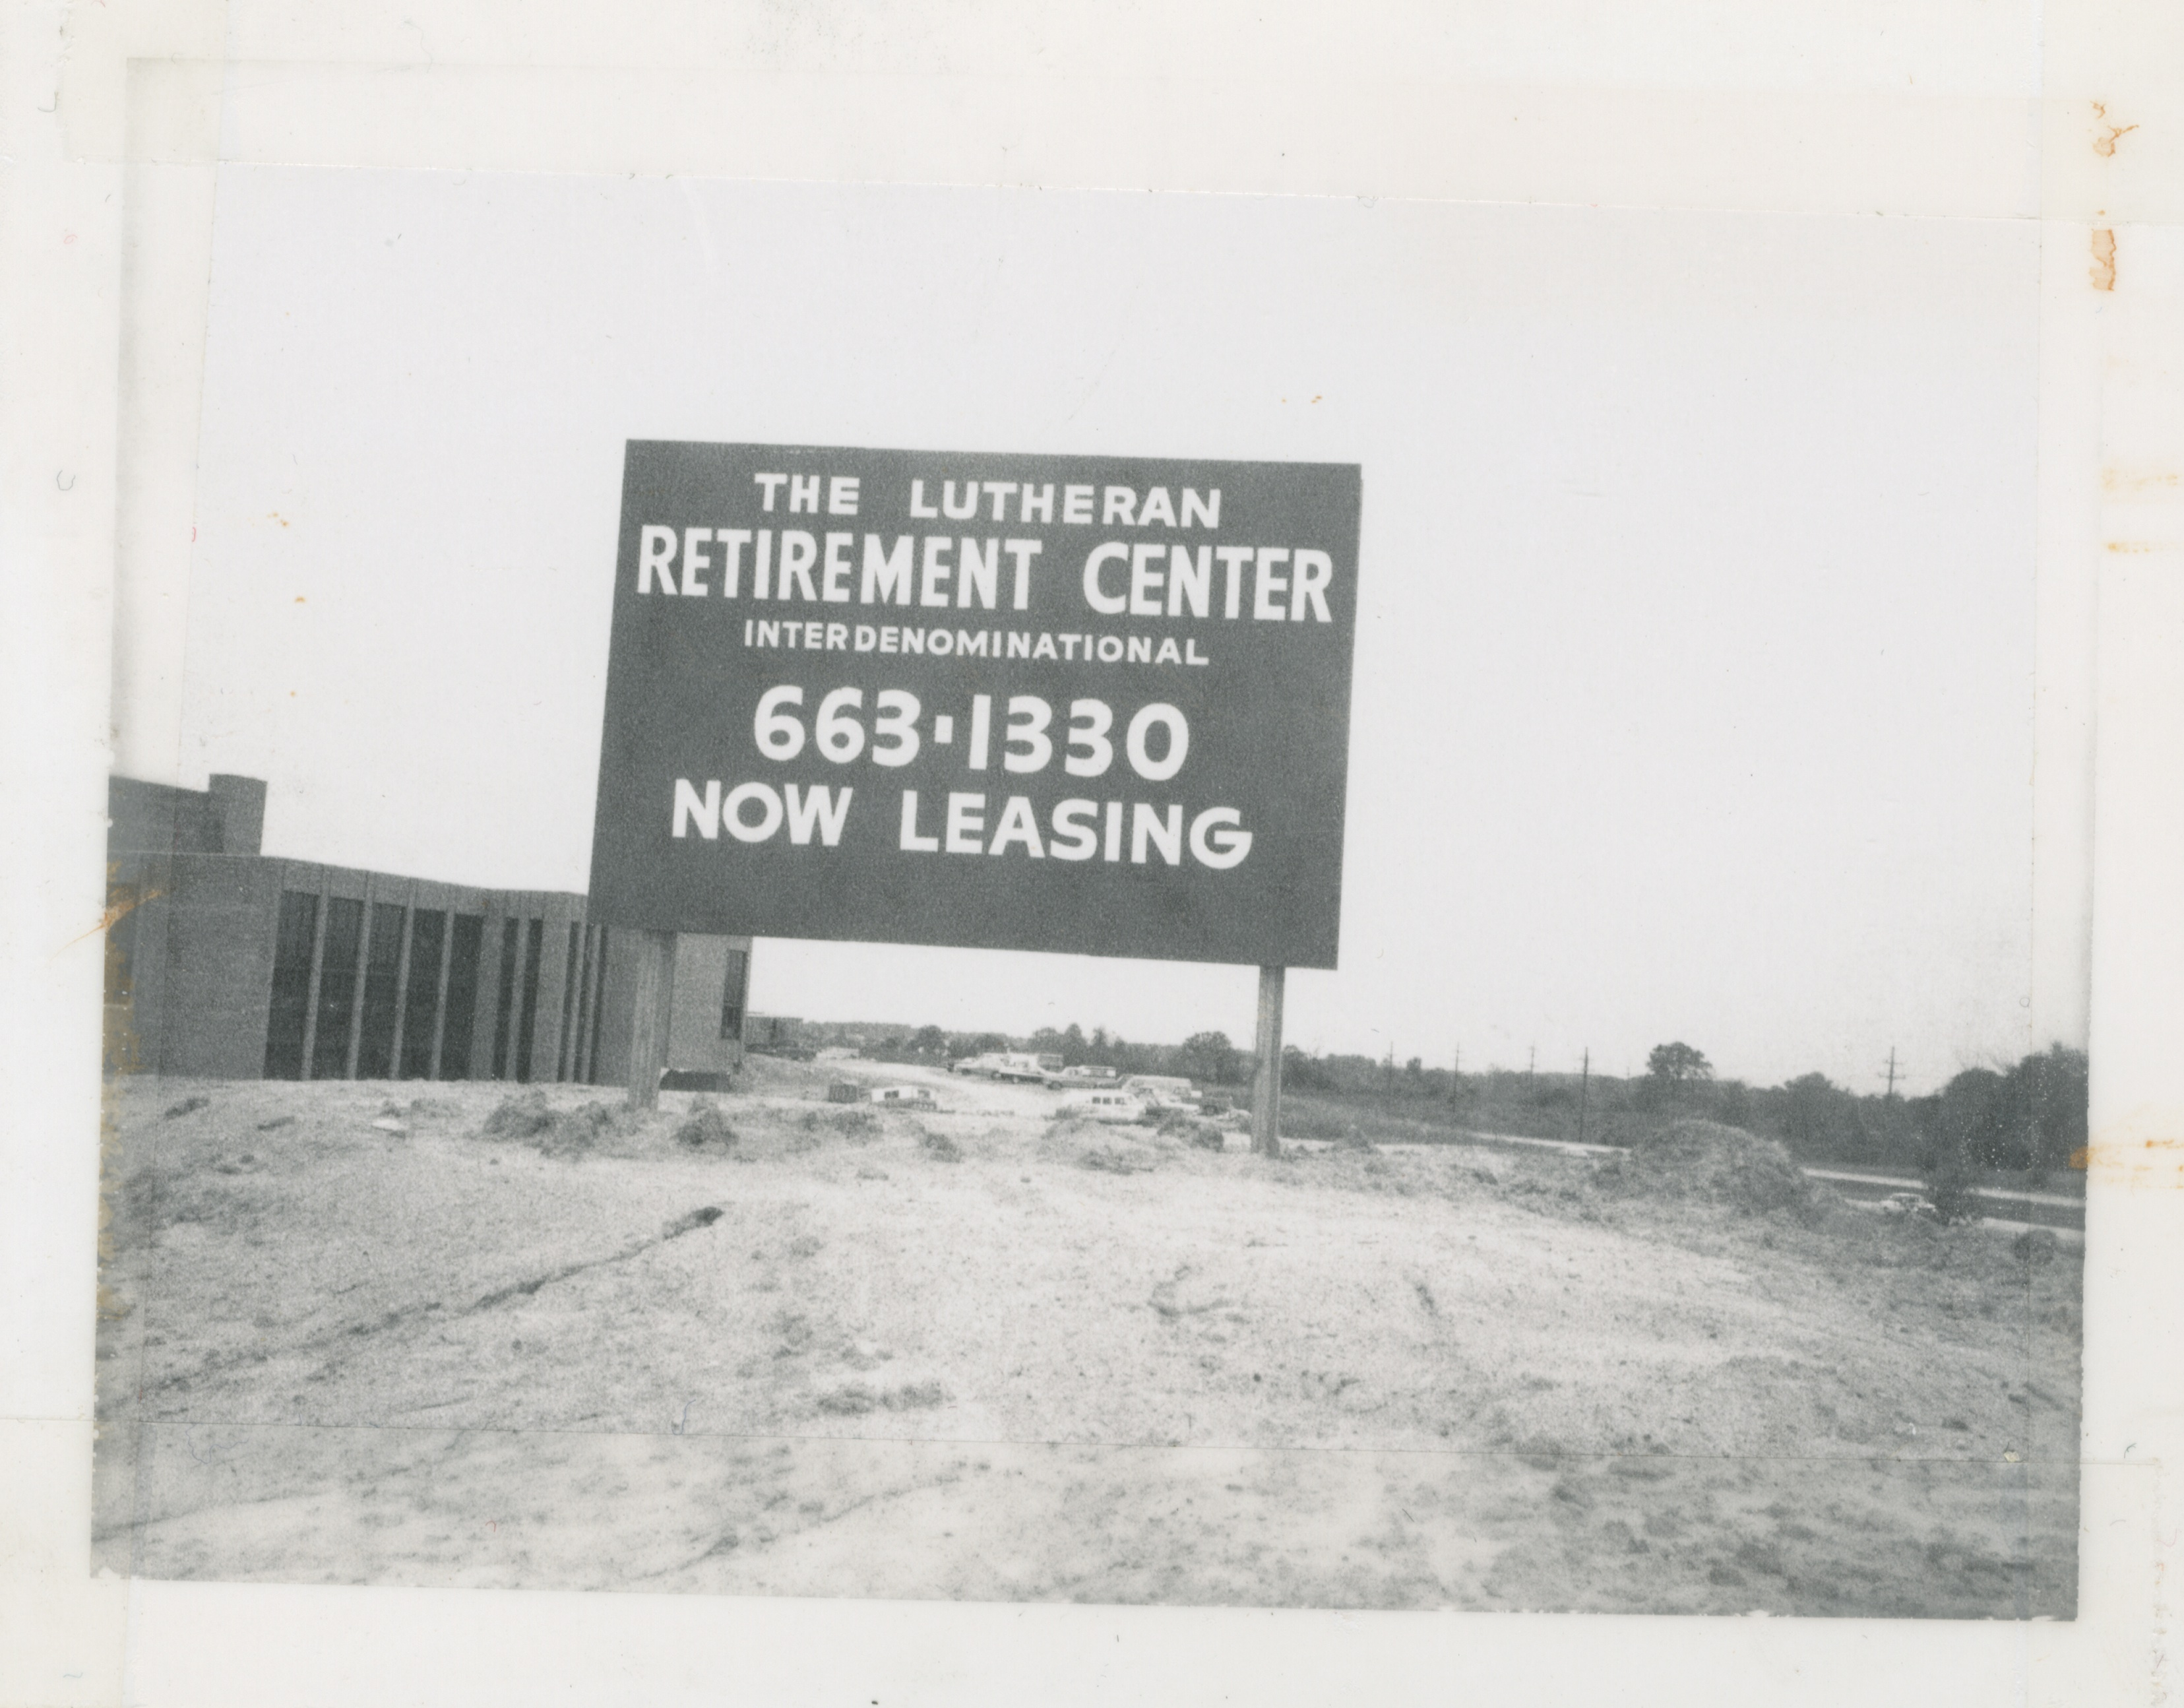 Lutheran Retirement Center, Zion Lutheran Church, 1972 image